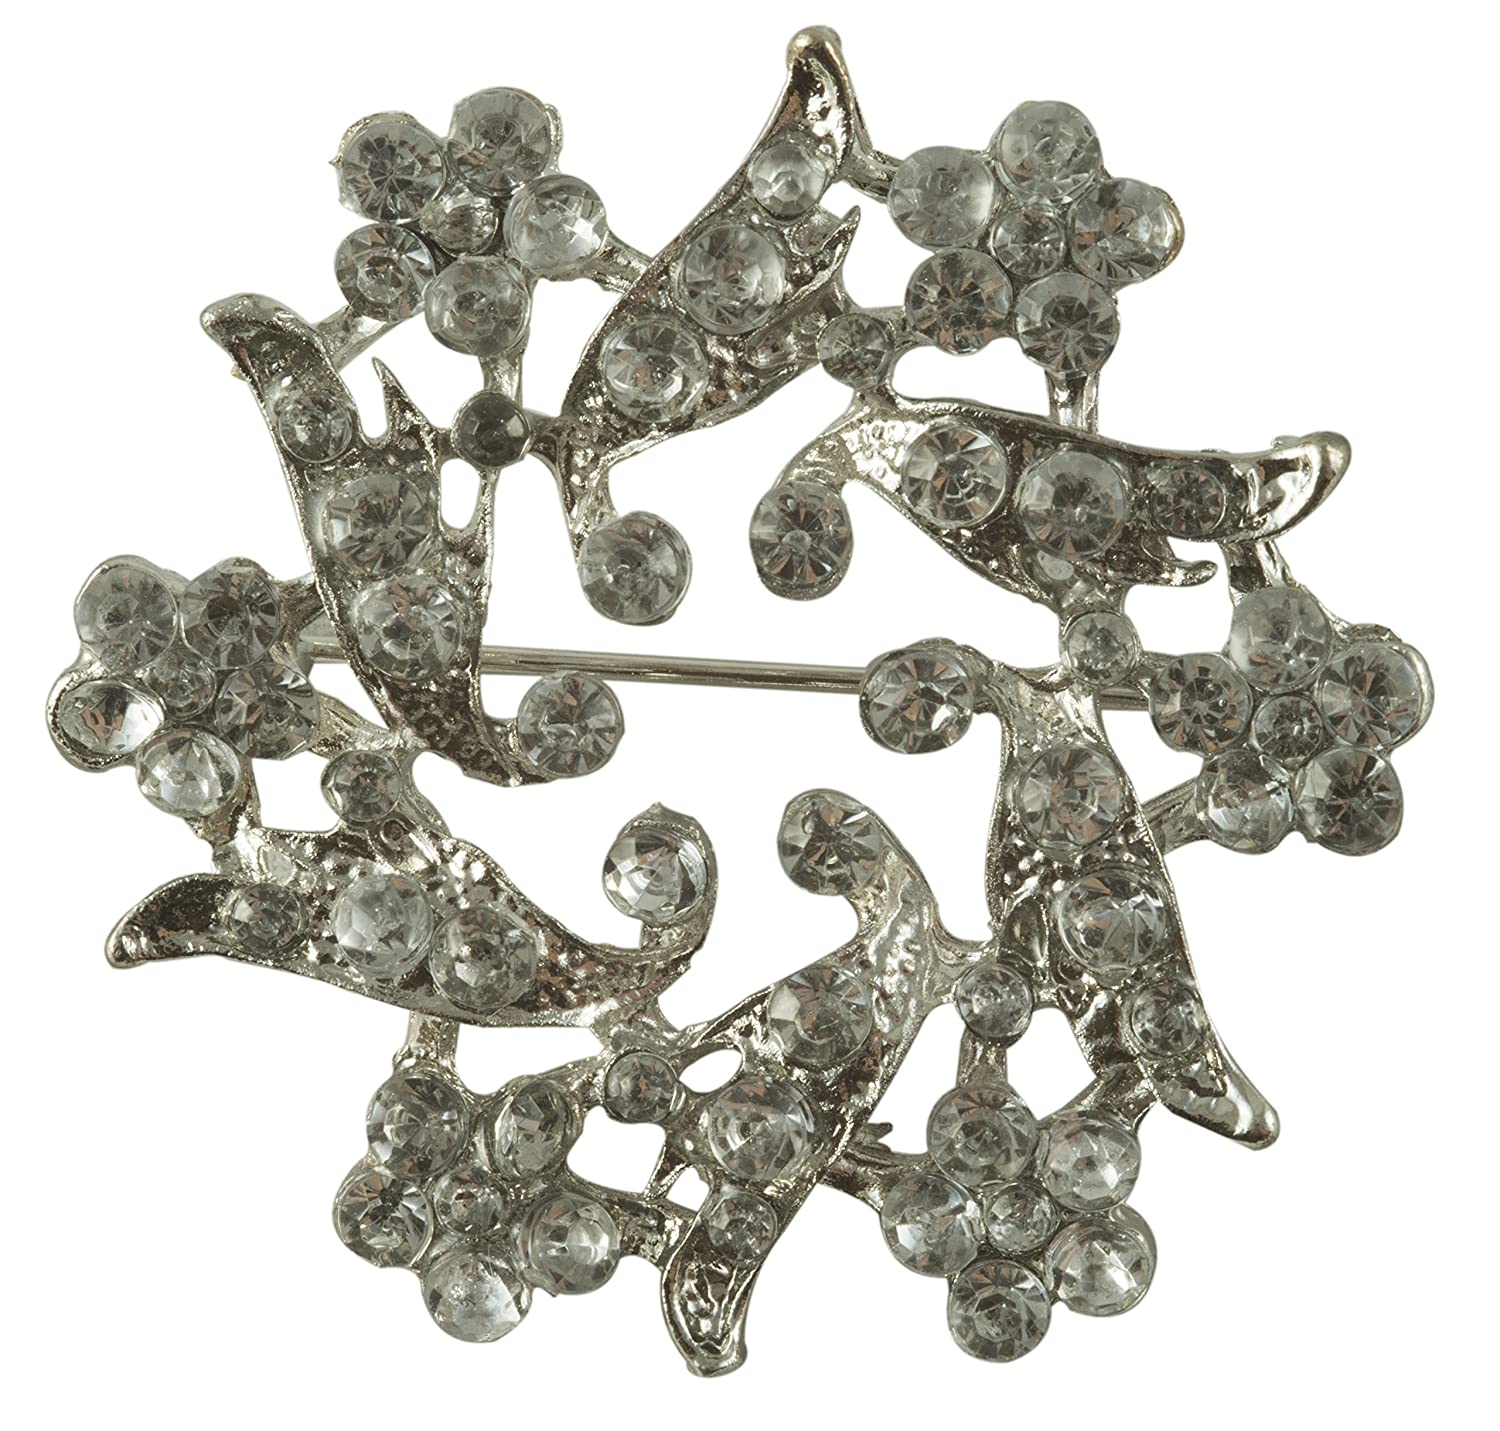 Vintage Style Jewelry, Retro Jewelry Crystal Rhinestone Pin in Silver Finish Metal (1.75 Diameter) $3.25 AT vintagedancer.com